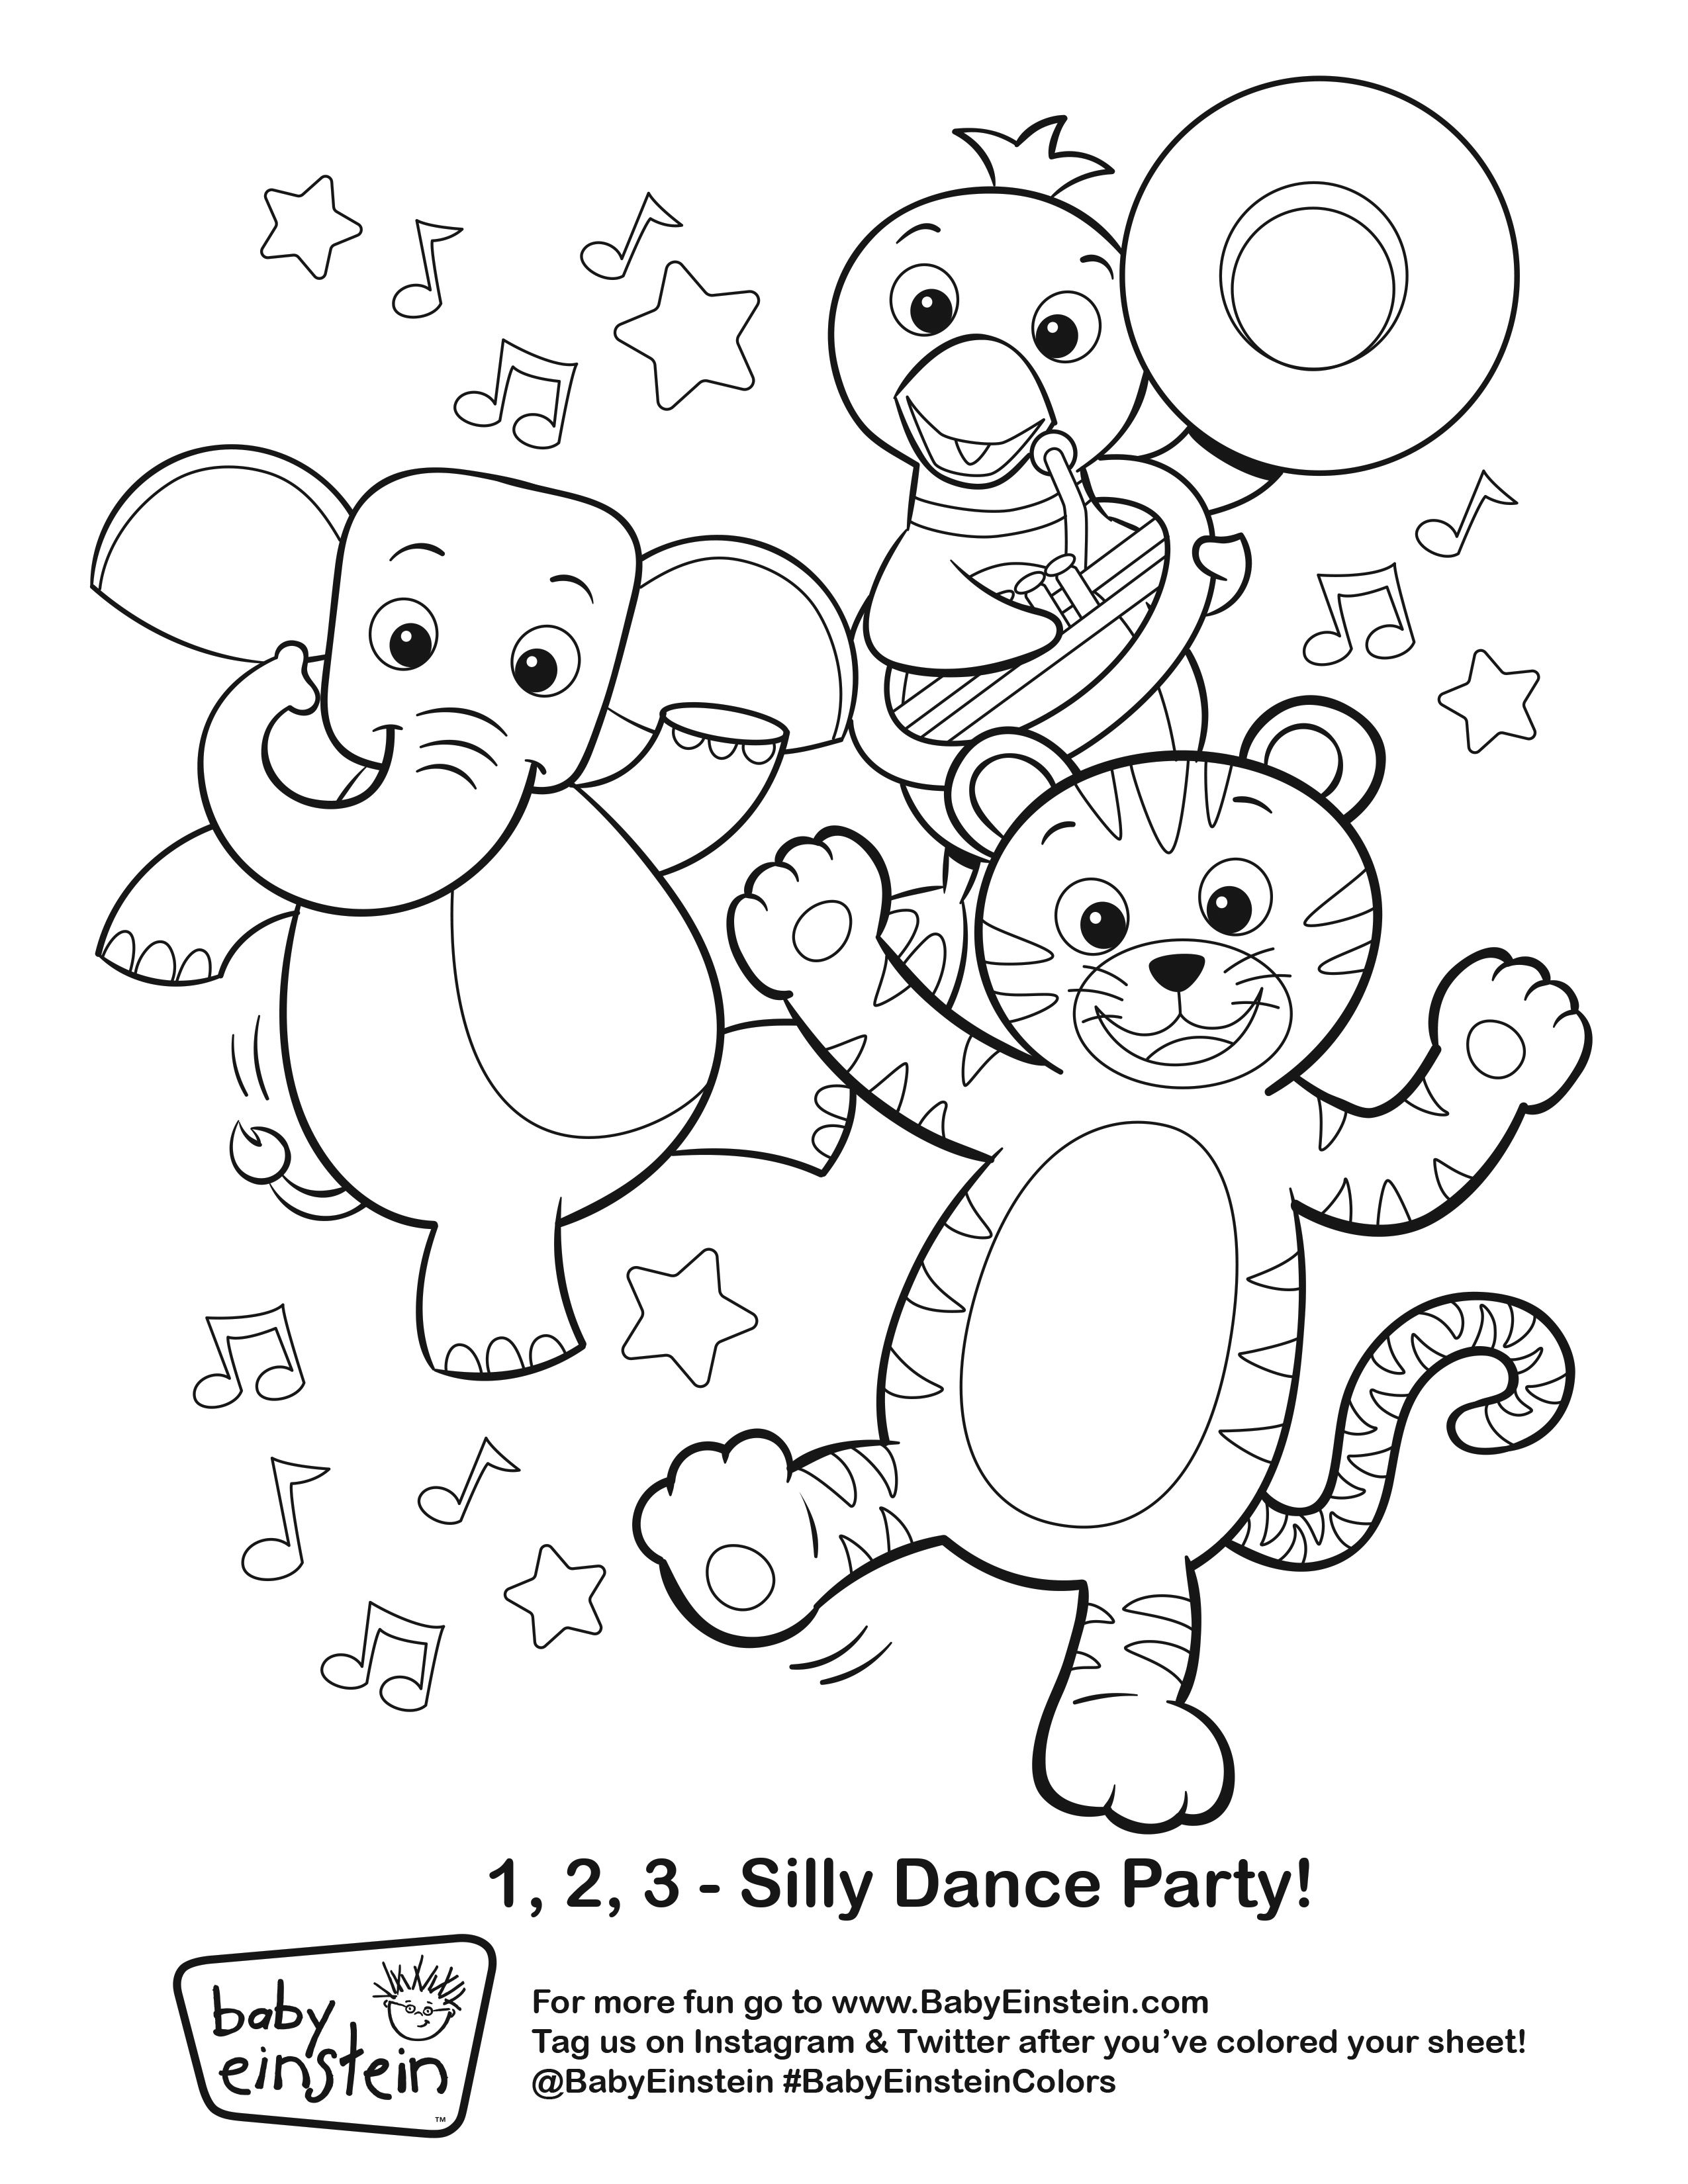 Keep Your Little One S Imagination At Full Steam Ahead With This Fun Coloring Sheet Babyeinstein Coloring Pages Coloring Pages For Boys Baby Coloring Pages